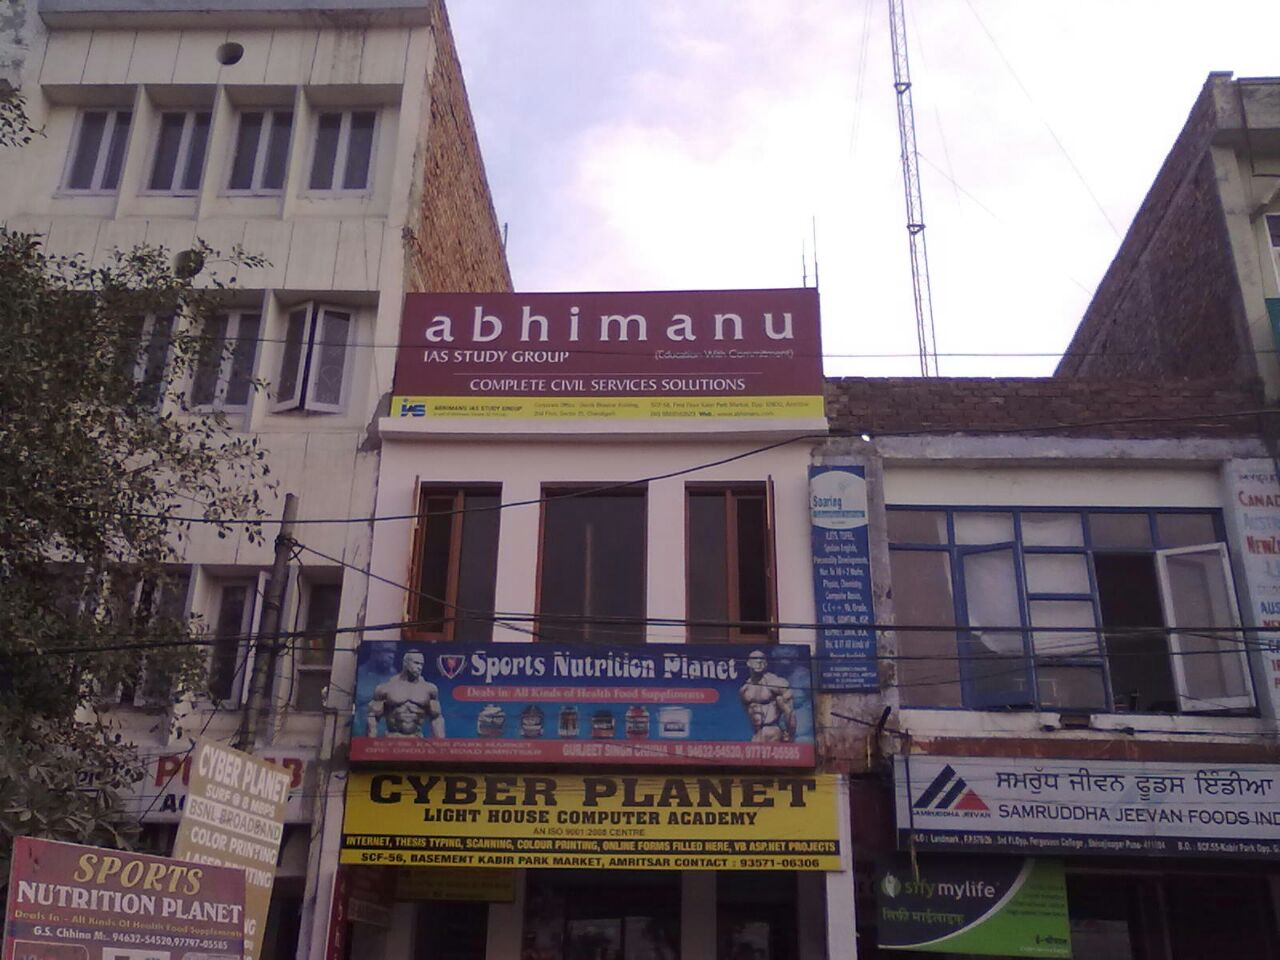 abhimanu-Gallery-Photo-3